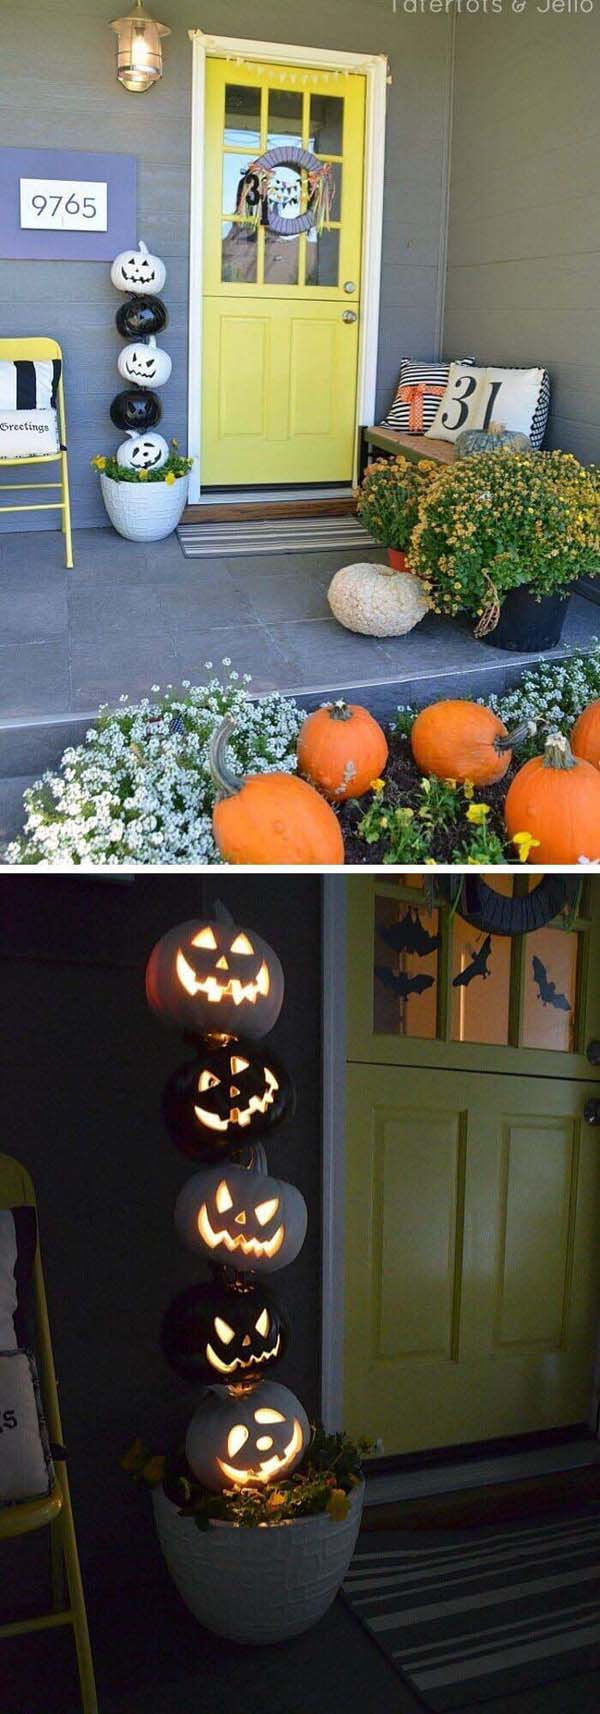 Glowing White and Black Pumpkins for Halloween Topiary #topiary #halloween #homedecorimage